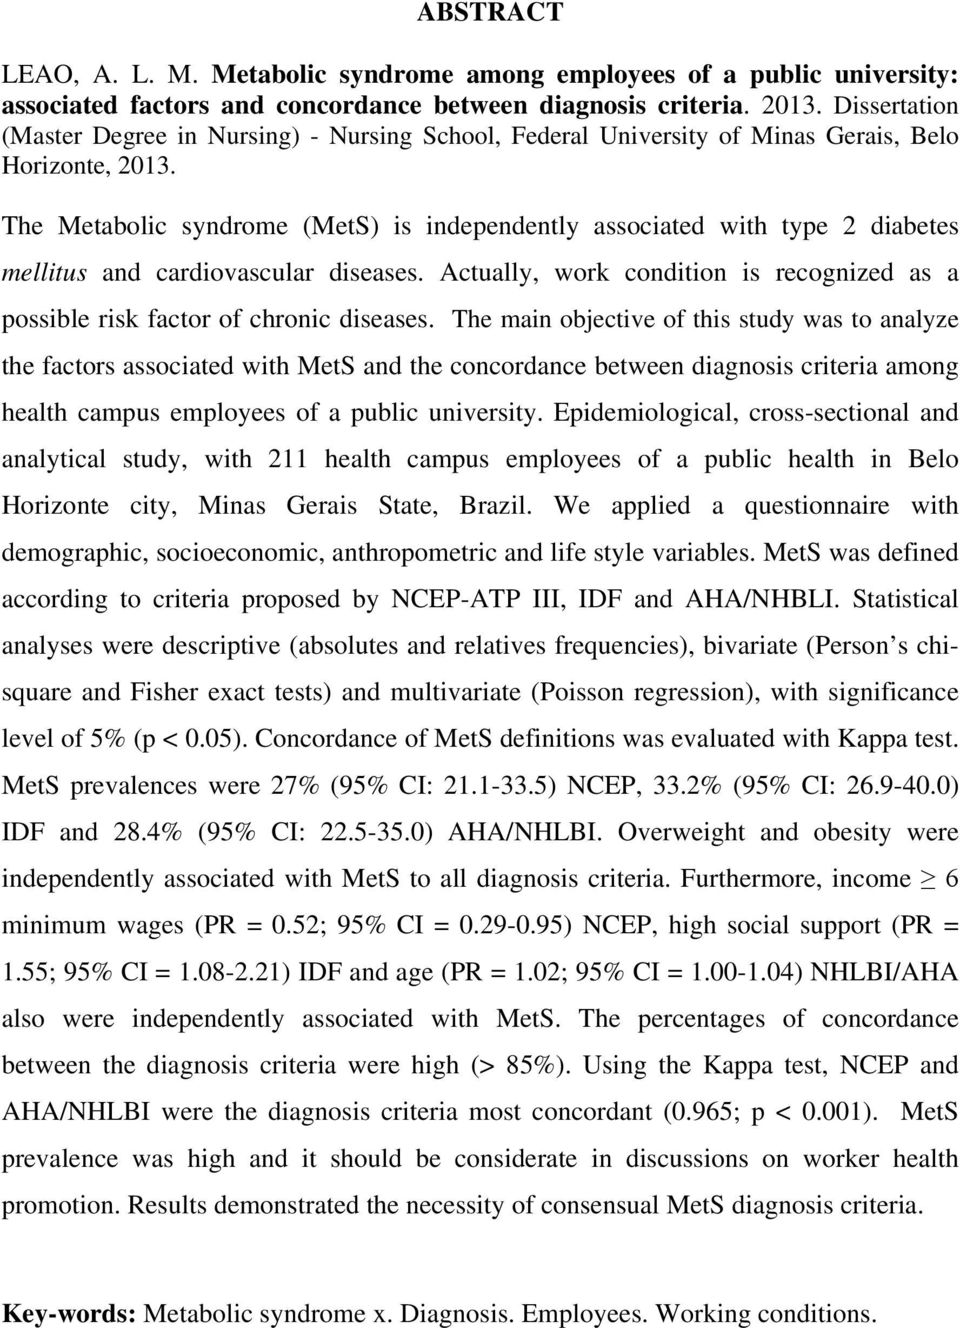 The Metabolic syndrome (MetS) is independently associated with type 2 diabetes mellitus and cardiovascular diseases.